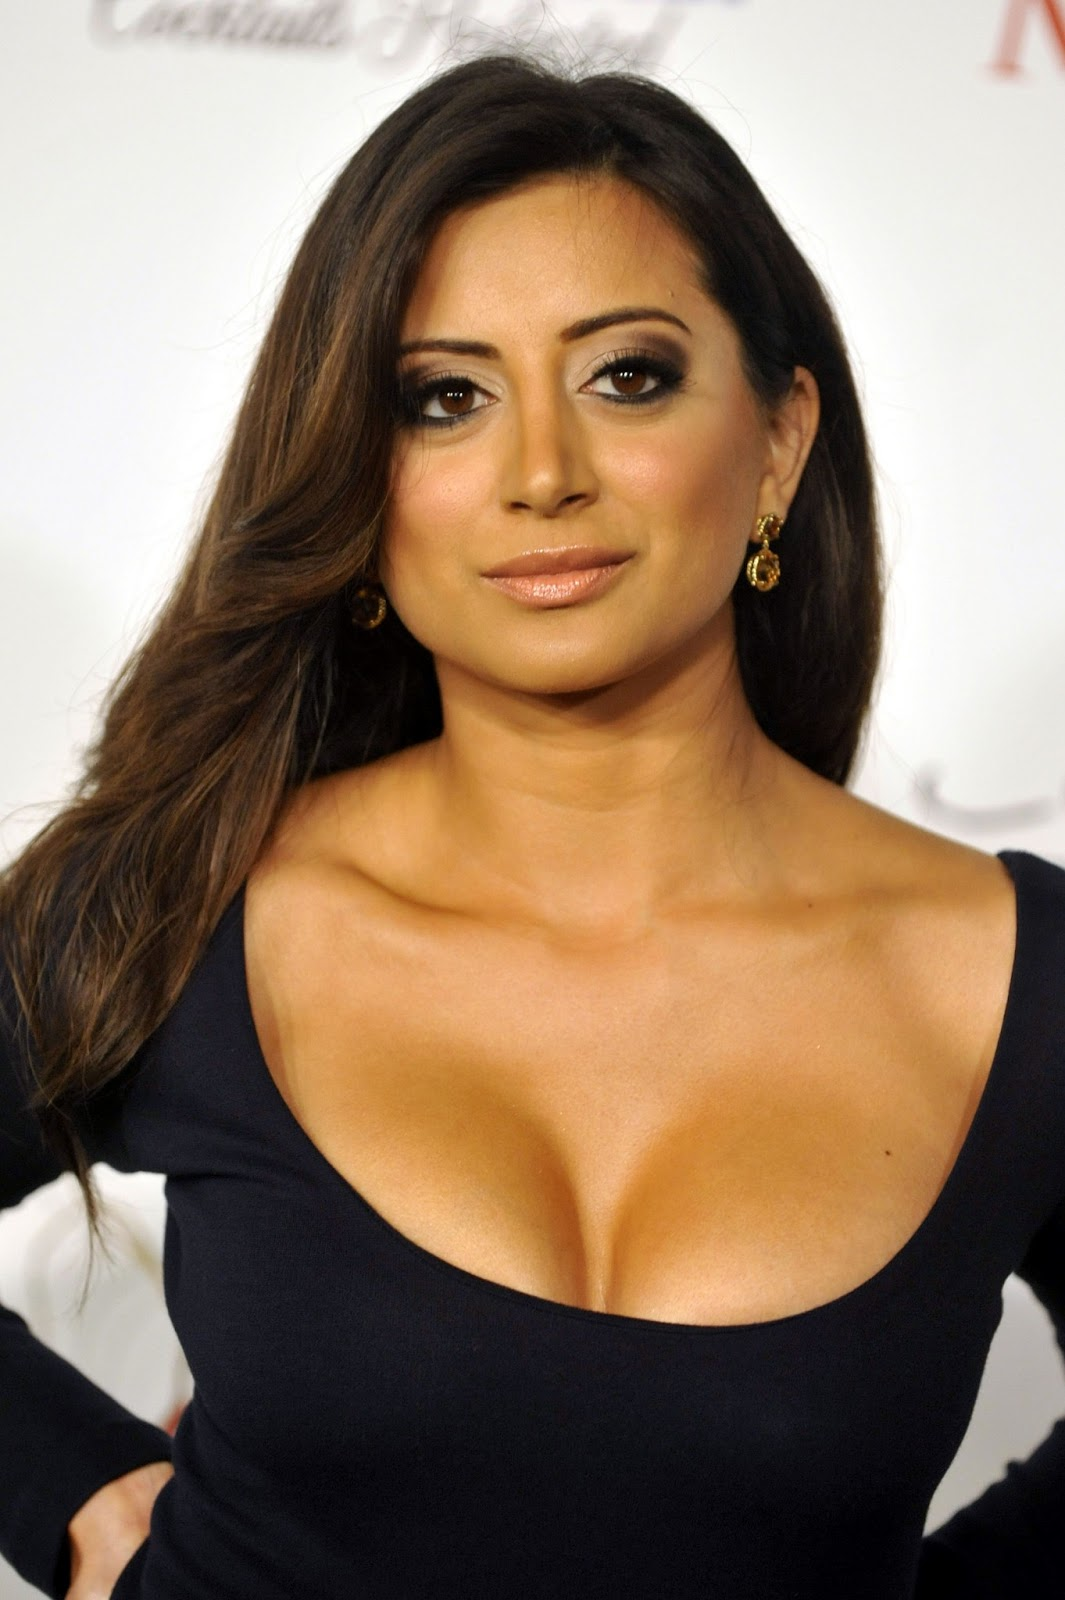 Amazonian Cleavages : Indian Actress Noureen DeWulf | NUDE